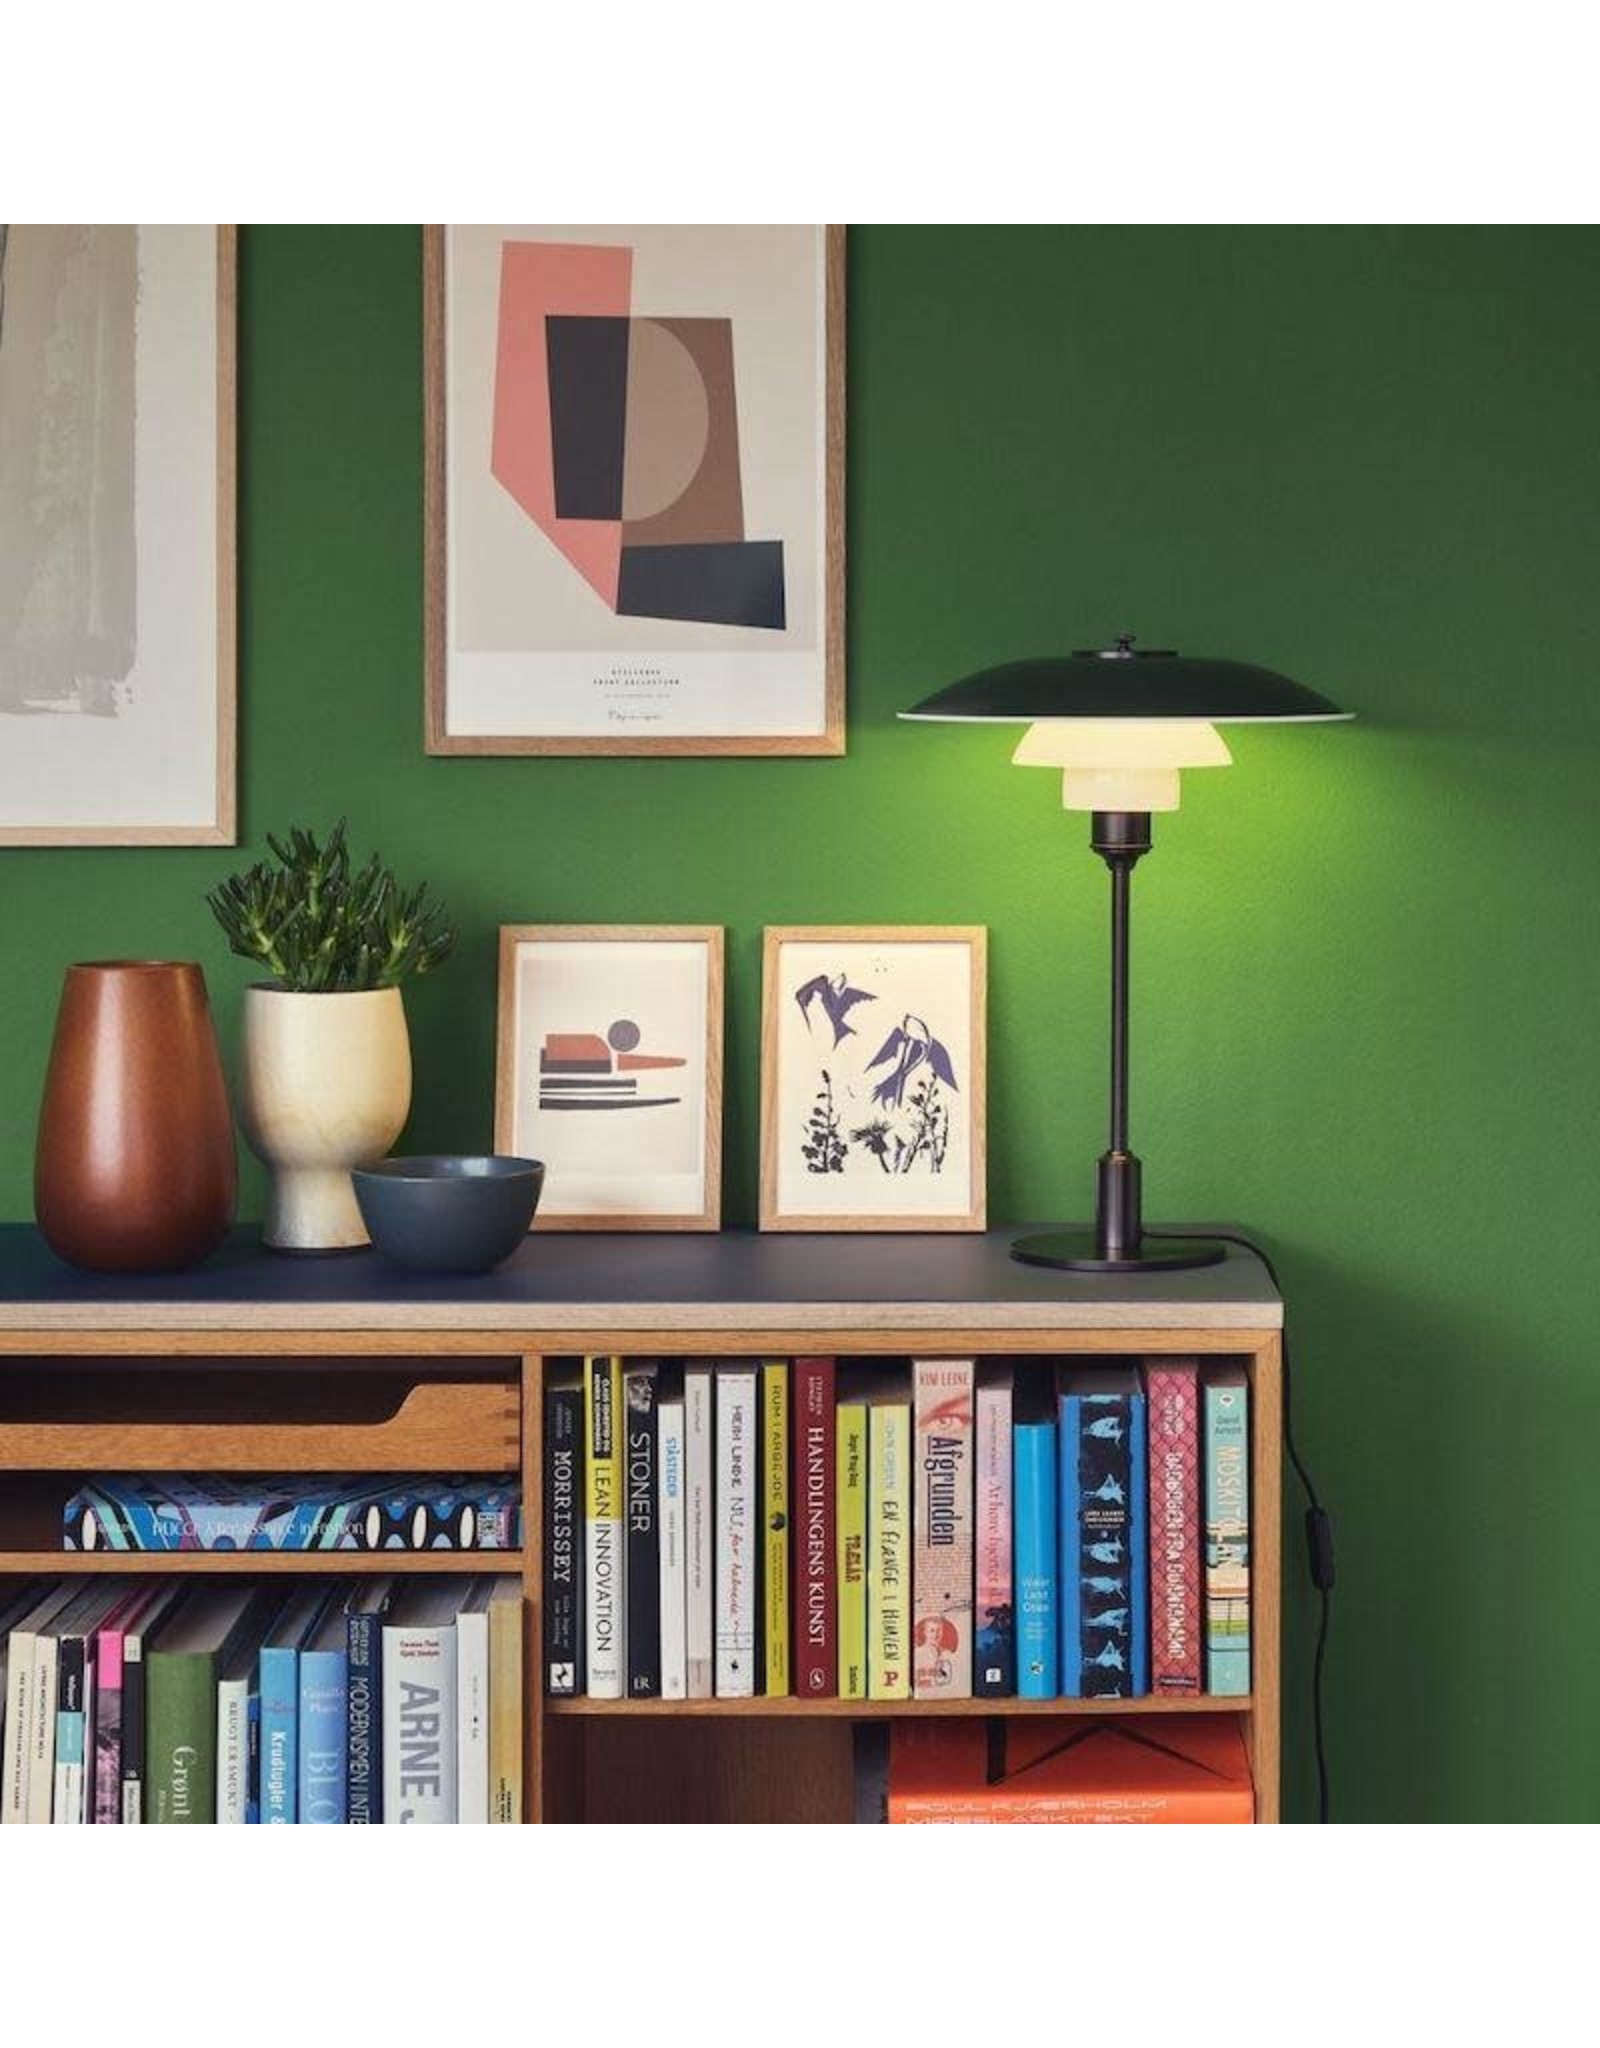 LOUIS POULSEN PH 3 1/2-2 1/2 TABLE LAMP IN COLOR FINISH